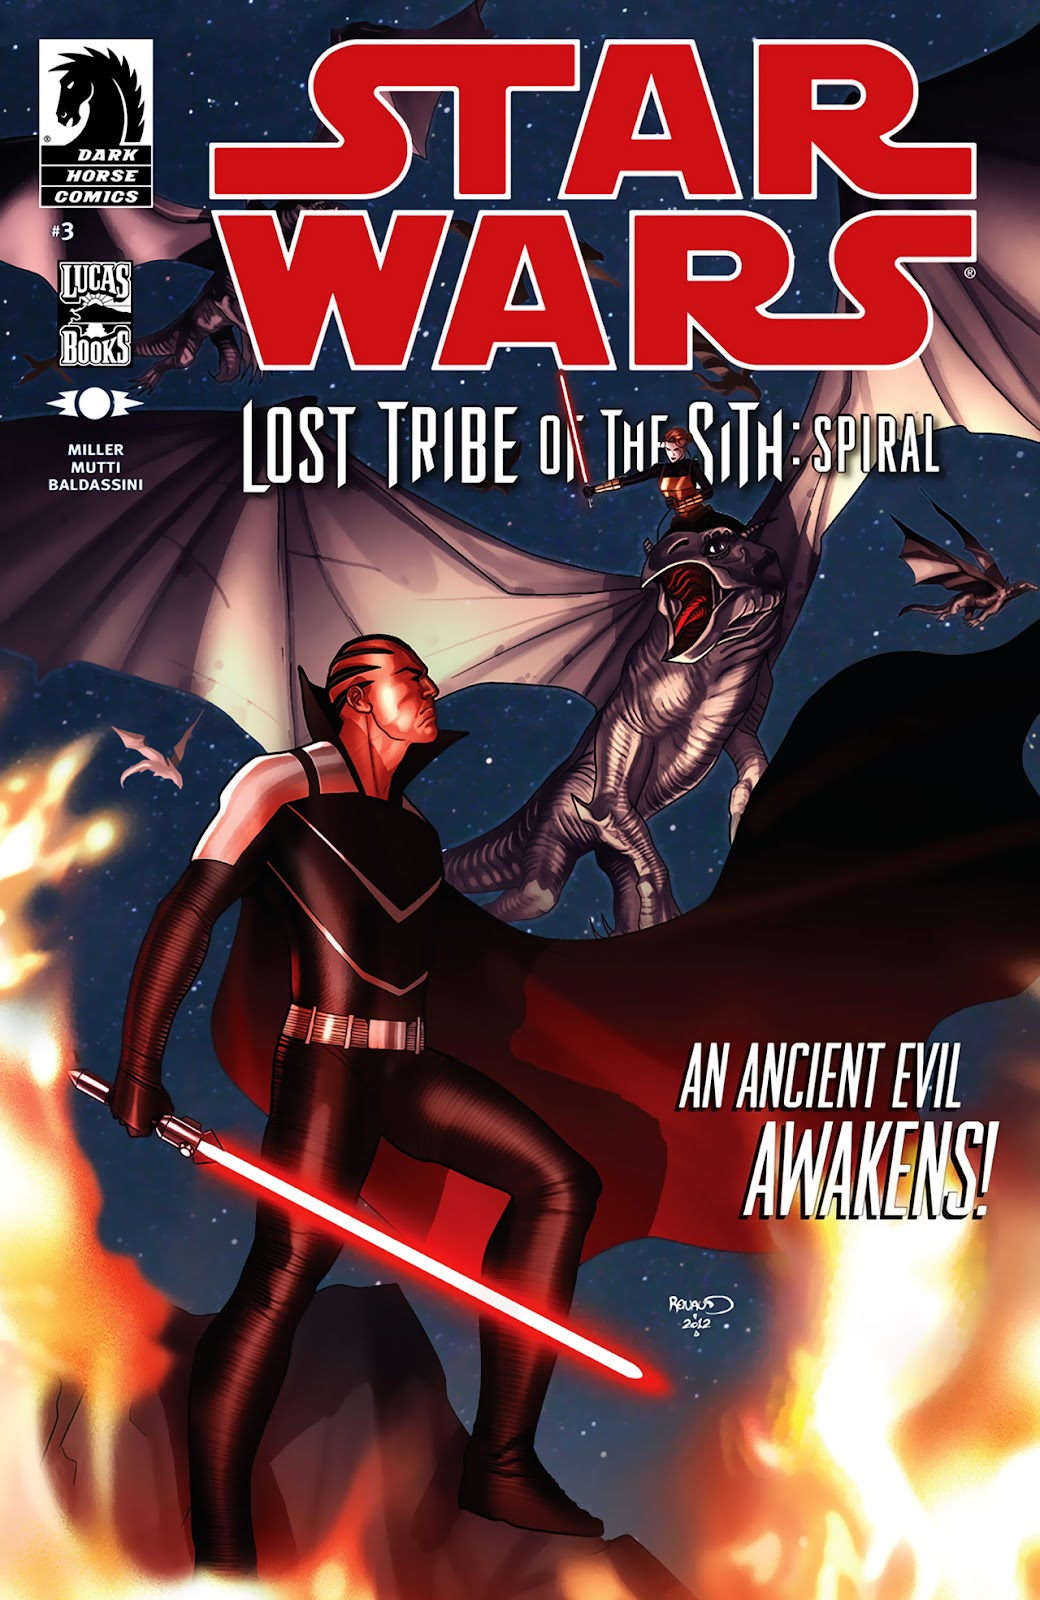 Star Wars: Lost Tribe of the Sith - Spiral 3 Page 1